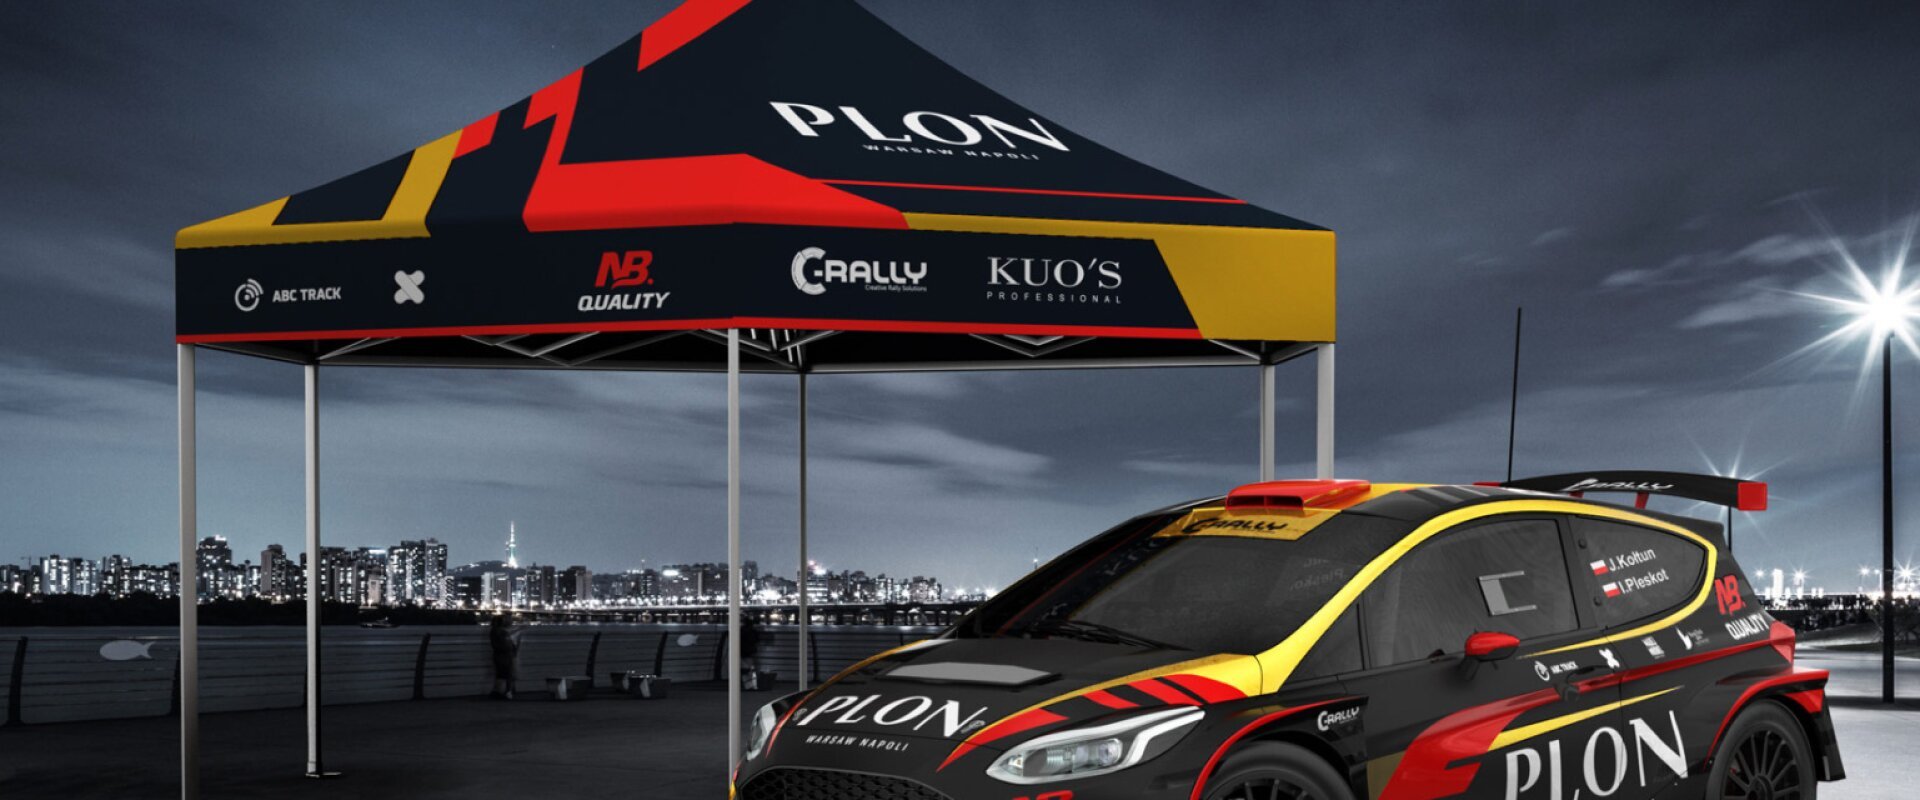 motorsport tent in customized design by abstraxi